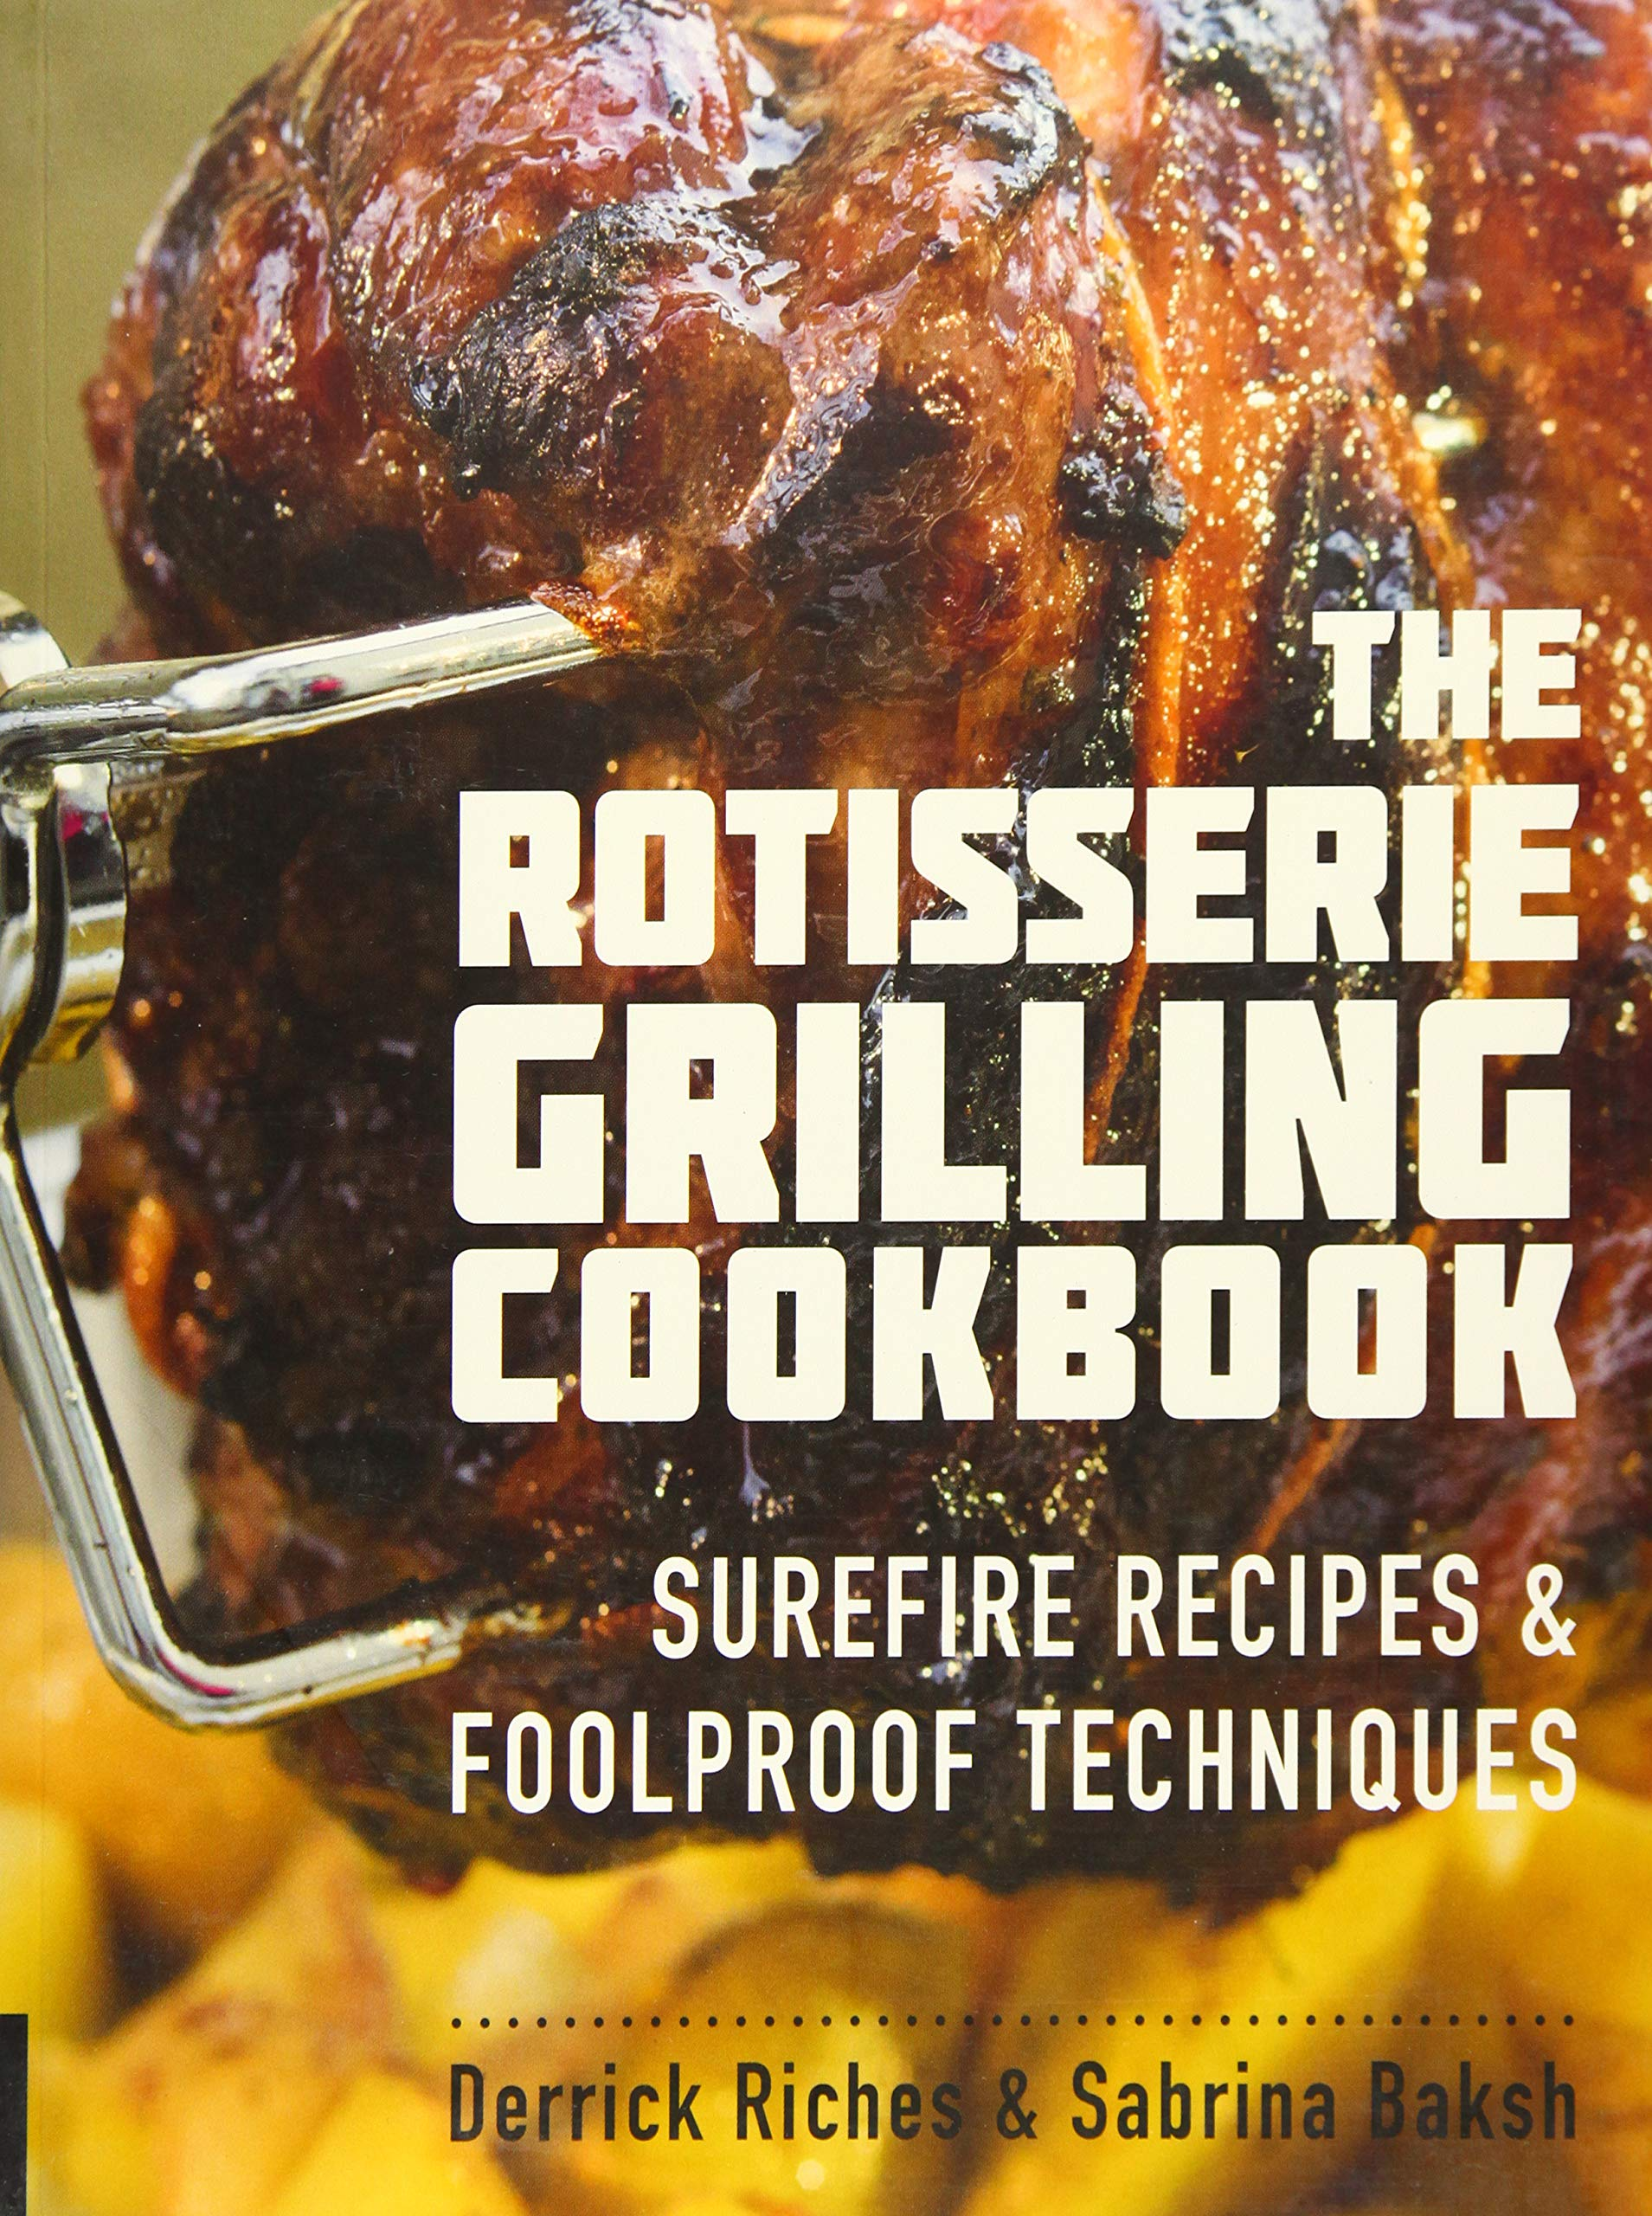 Rotisserie Grilling Cookbook Foolproof Techniques product image